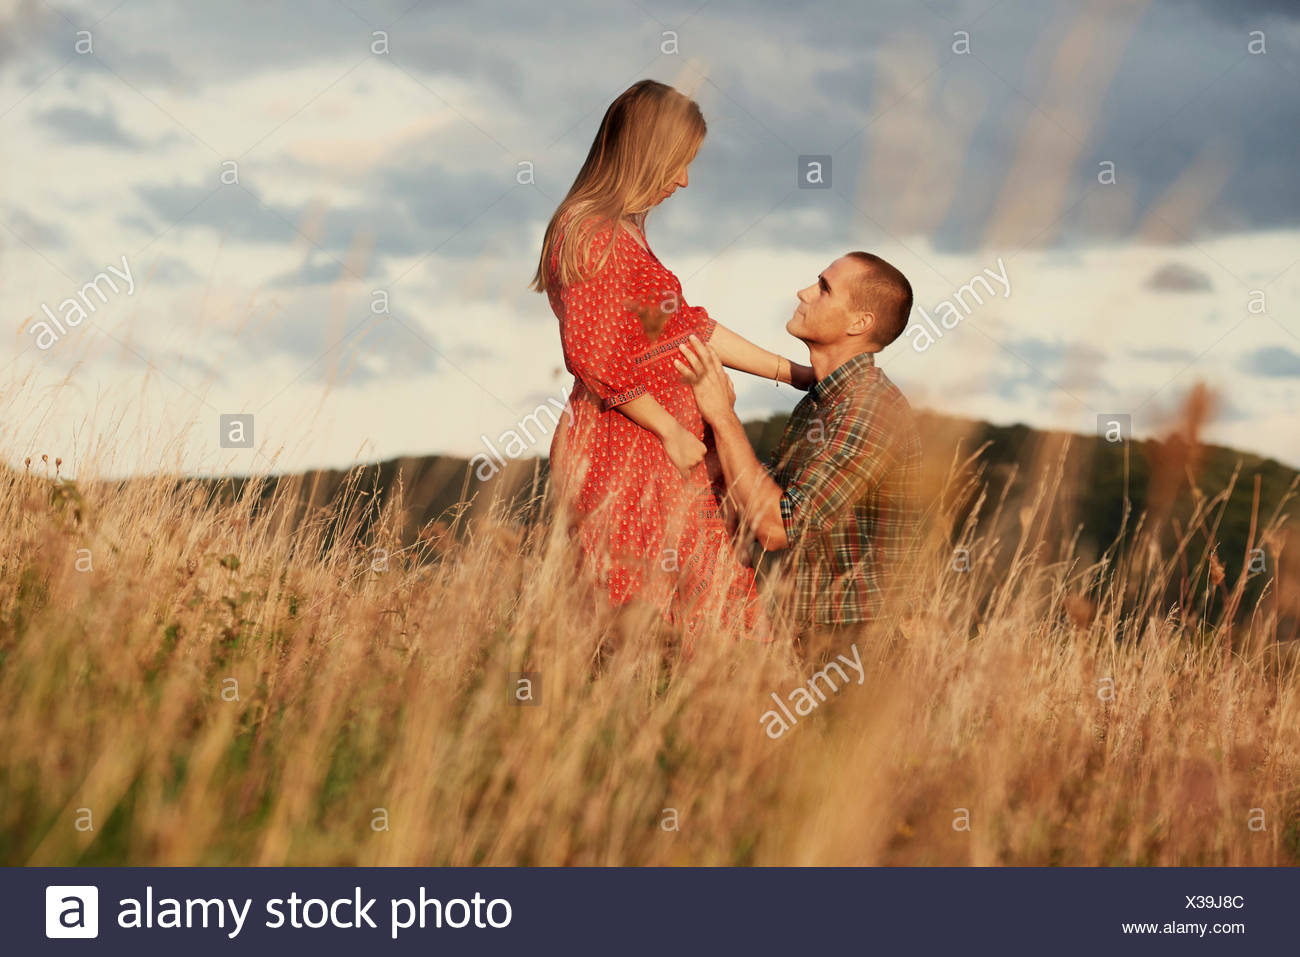 Mid adult man kneeling with hand on pregnant wife's stomach in field - Stock Image